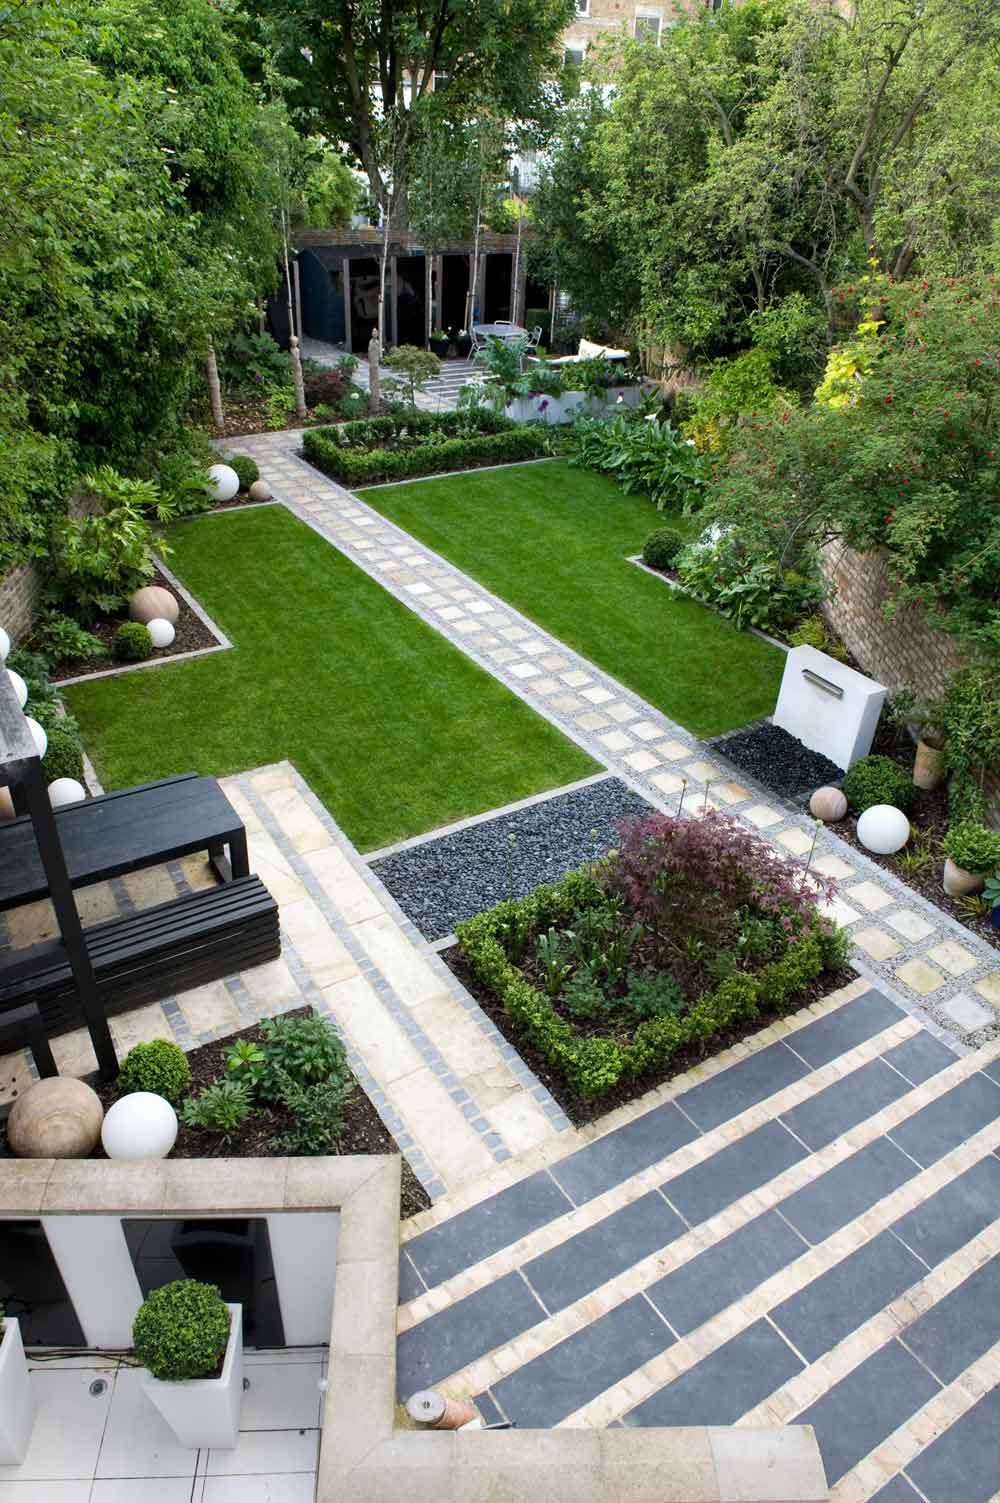 Before & After: A Modern Japanese Garden in North London ... on Backyard Patio Layout id=35884